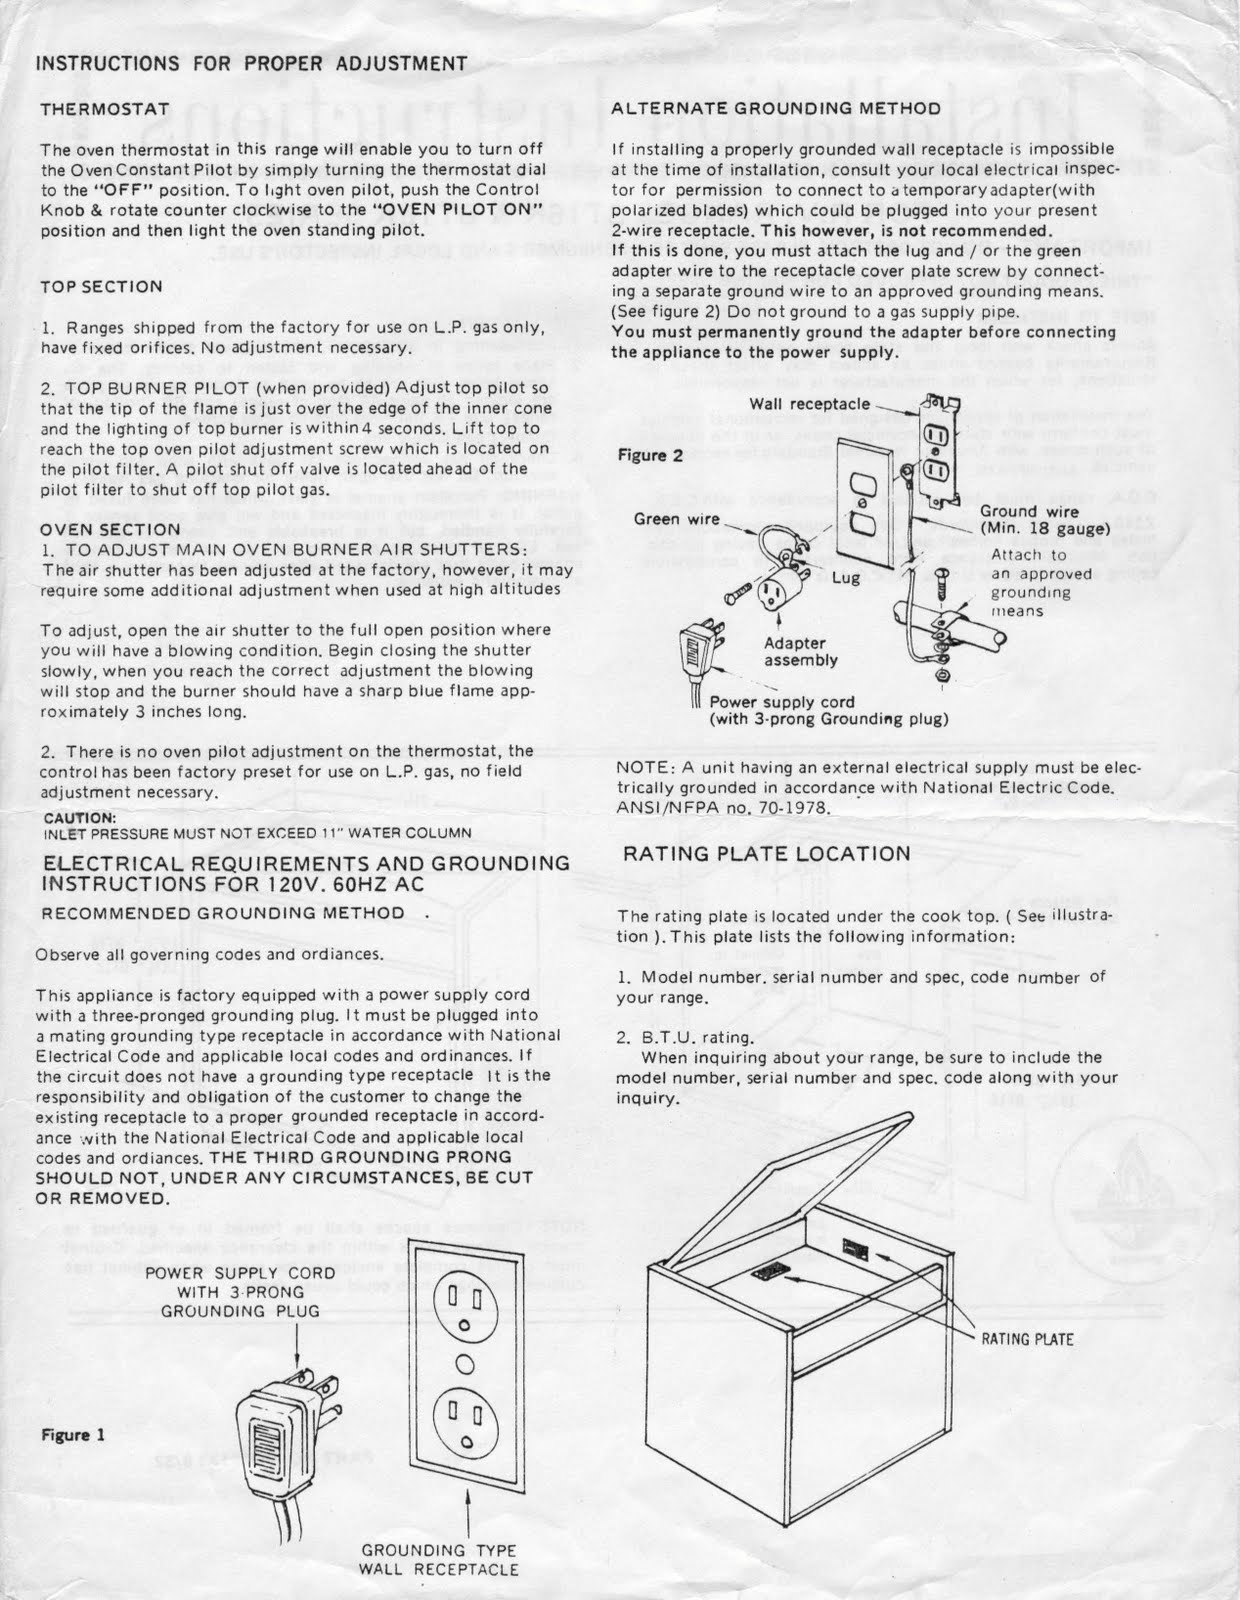 Magic Chef Range Manuals Stove Thermostat Diagram Free Download Wiring Fleetwood Pace Arrow Owners Manual 1240x1600 Image